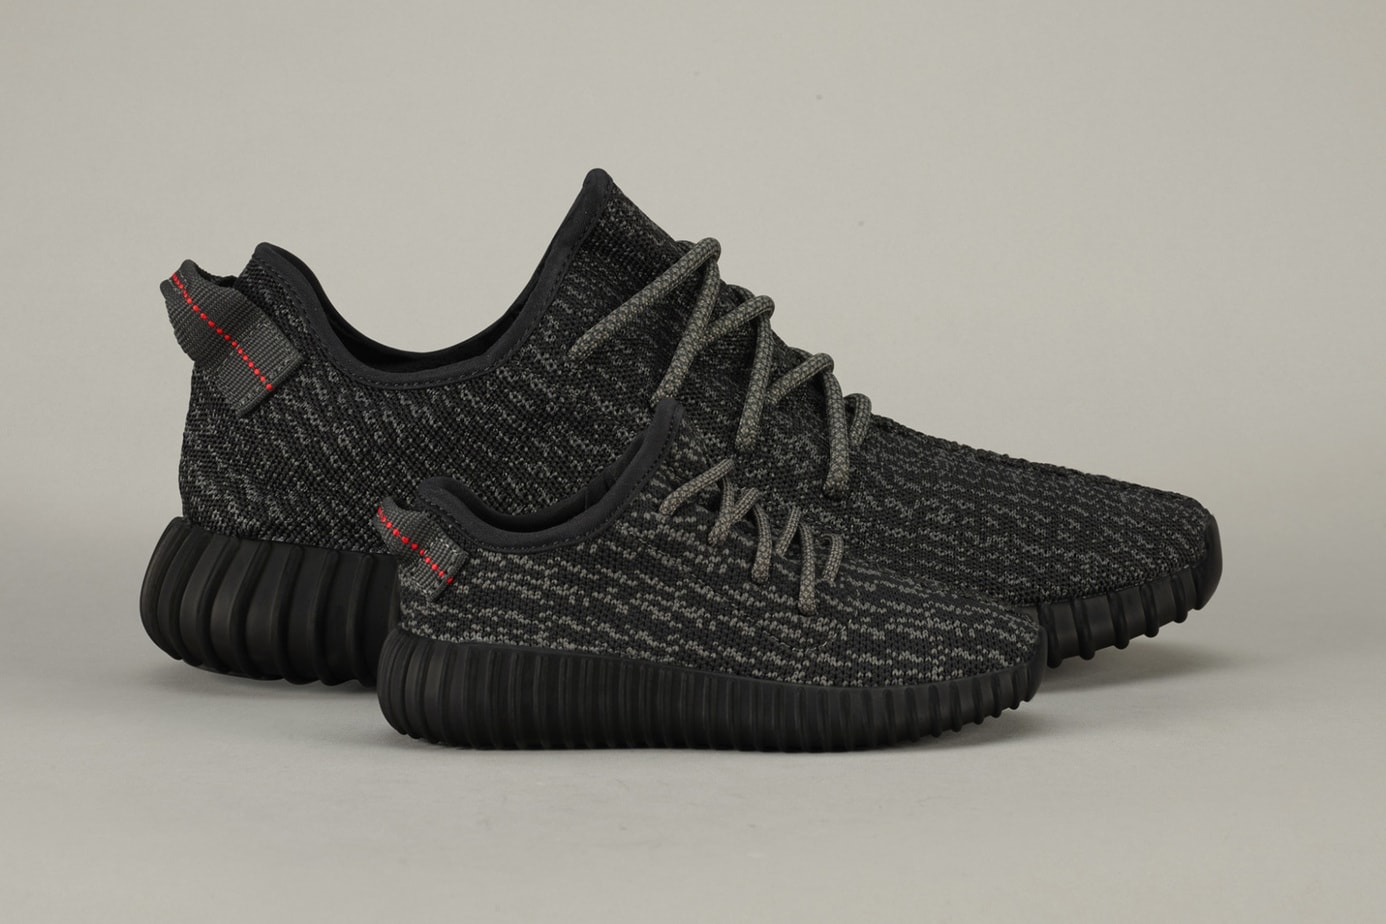 Stripes Are Coming to the Adidas Yeezy 350 Boost